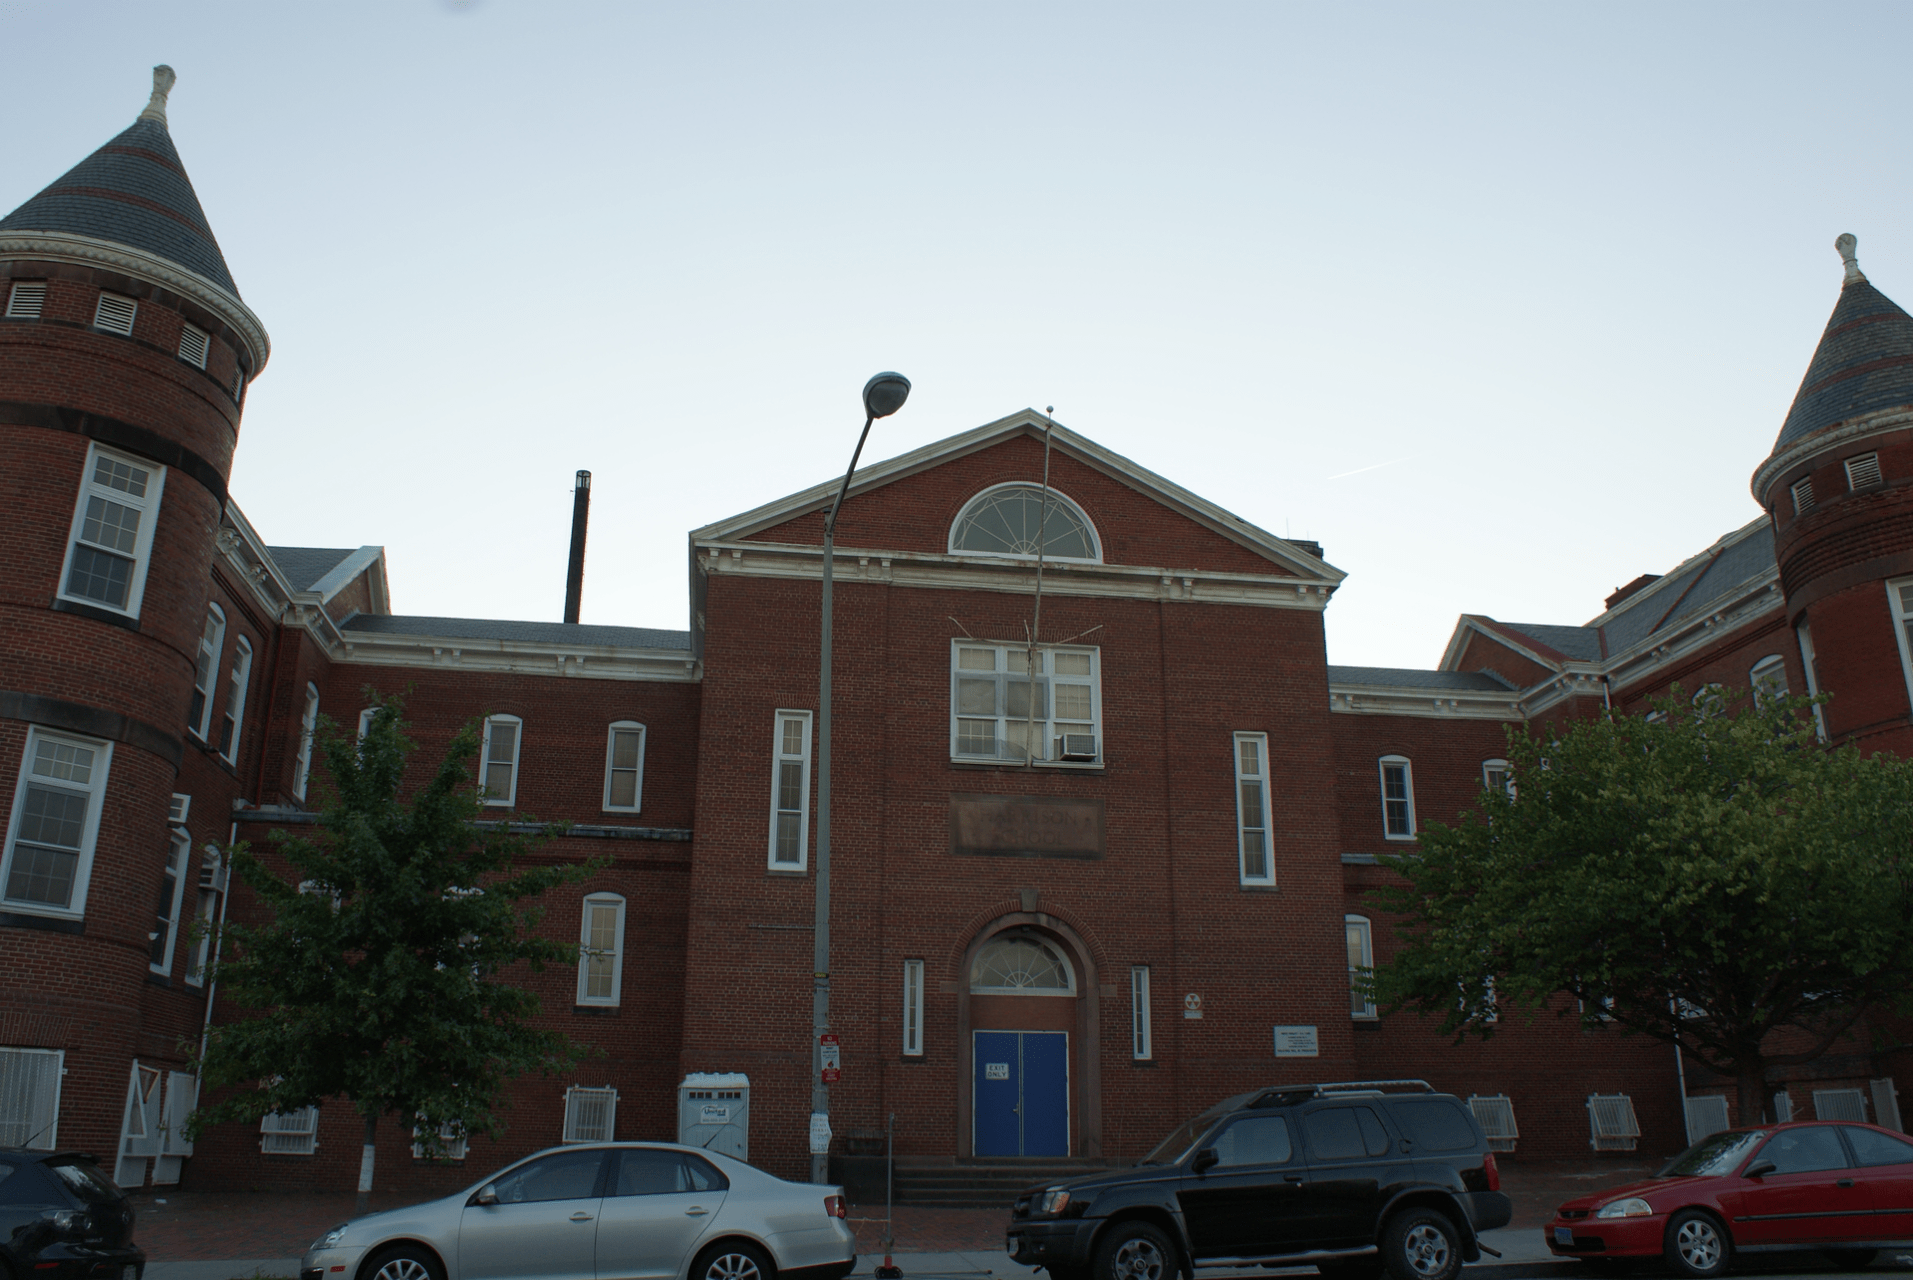 The Harrison School, at 13th and V Streets NW, was built in 1890 and closed in 2008. The city has awarded it to Meridian Public Charter School.